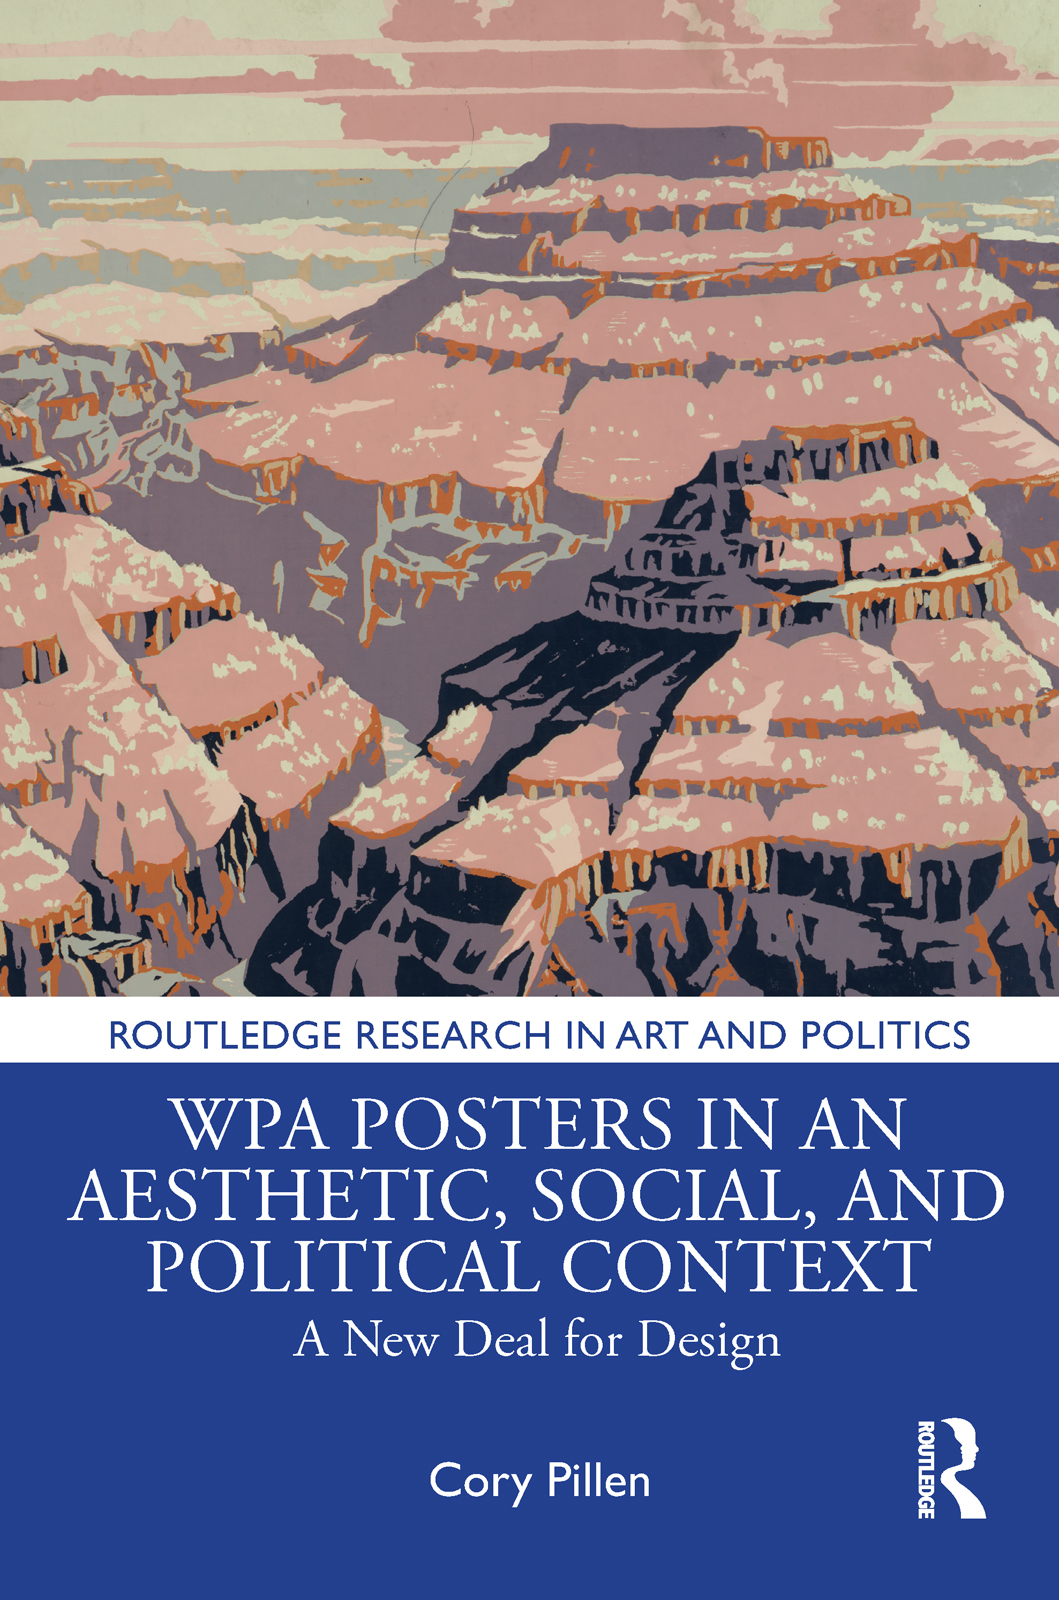 WPA Posters in an Aesthetic, Social, and Political Context: A New Deal for Design book cover